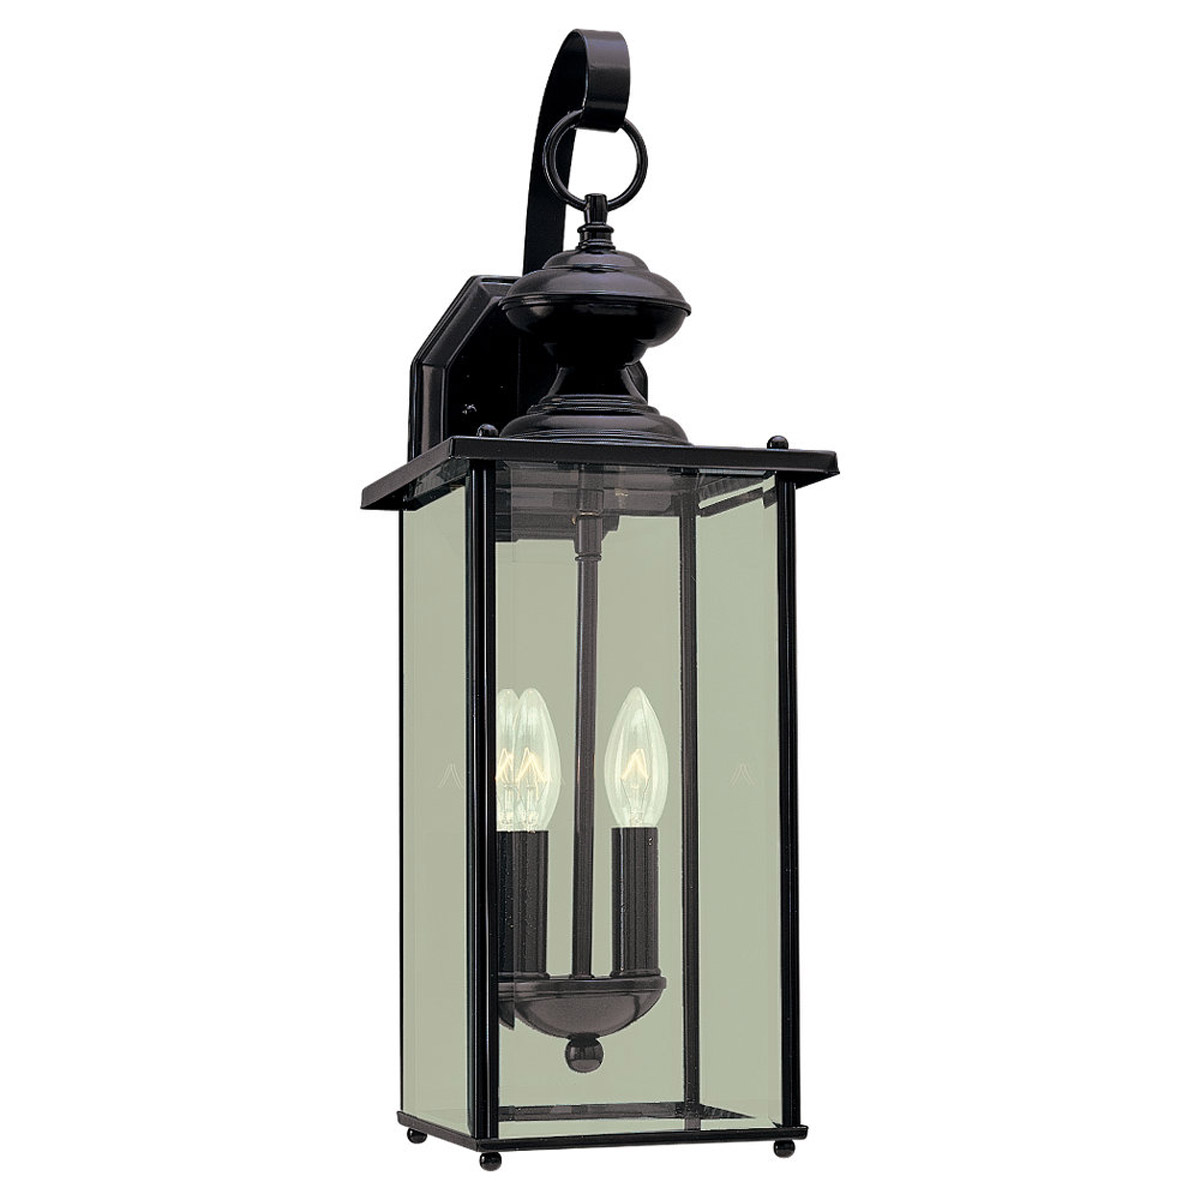 Sea Gull Lighting Jamestowne 2 Light Outdoor Wall Lantern in Black 8468-12 photo